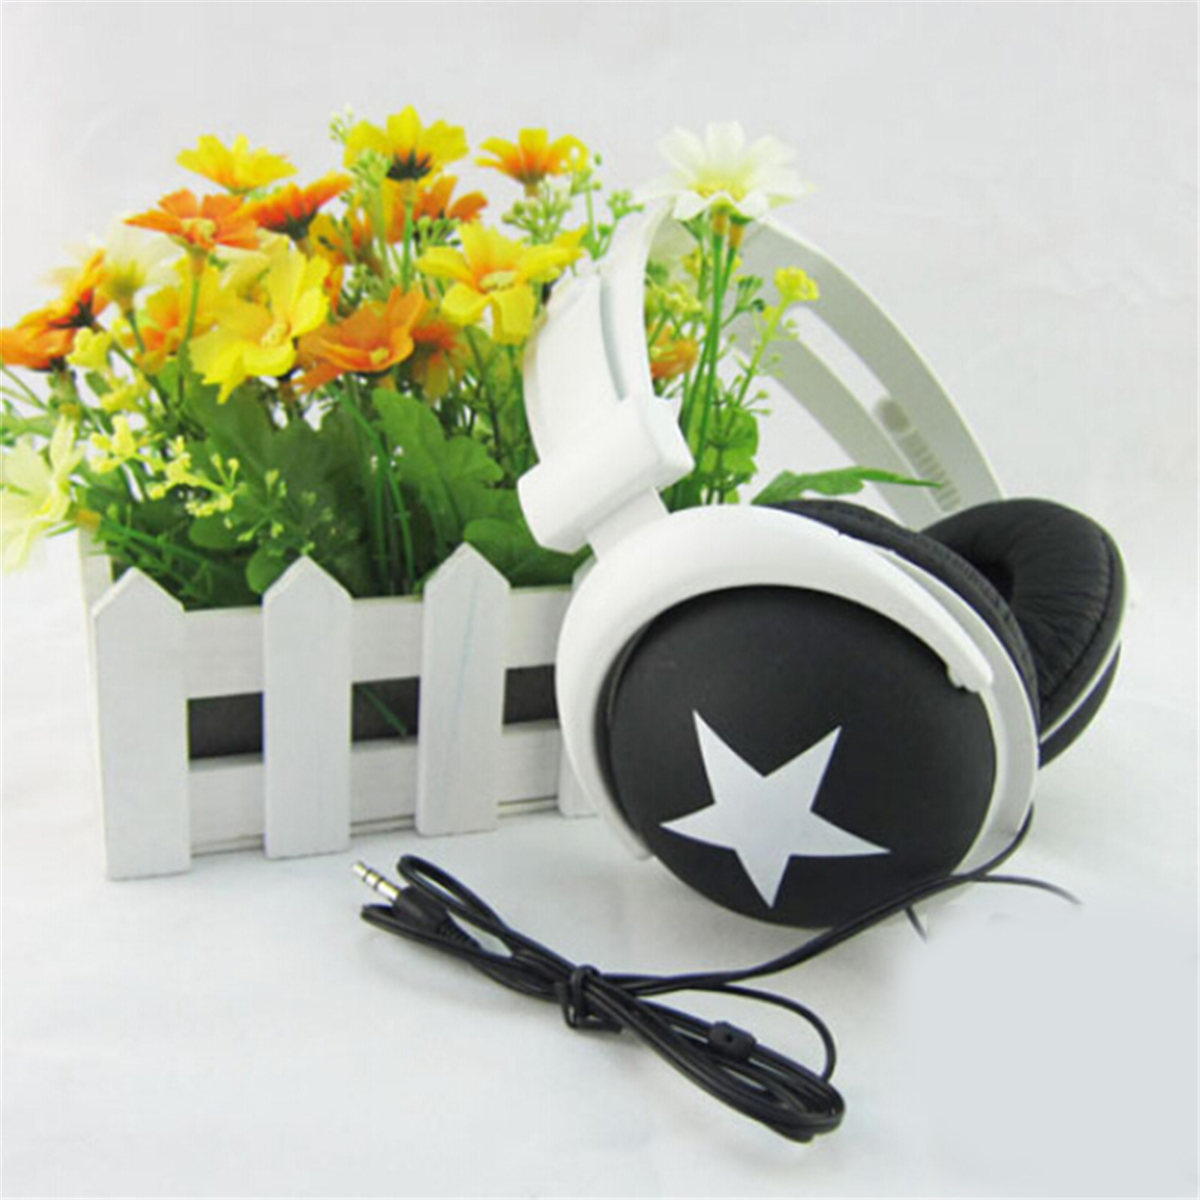 Affordable Brand New High Quality Soft Comfortable Wear Wired Headphone for Sport MP3 MP4 PC Laptop Smart Phone image